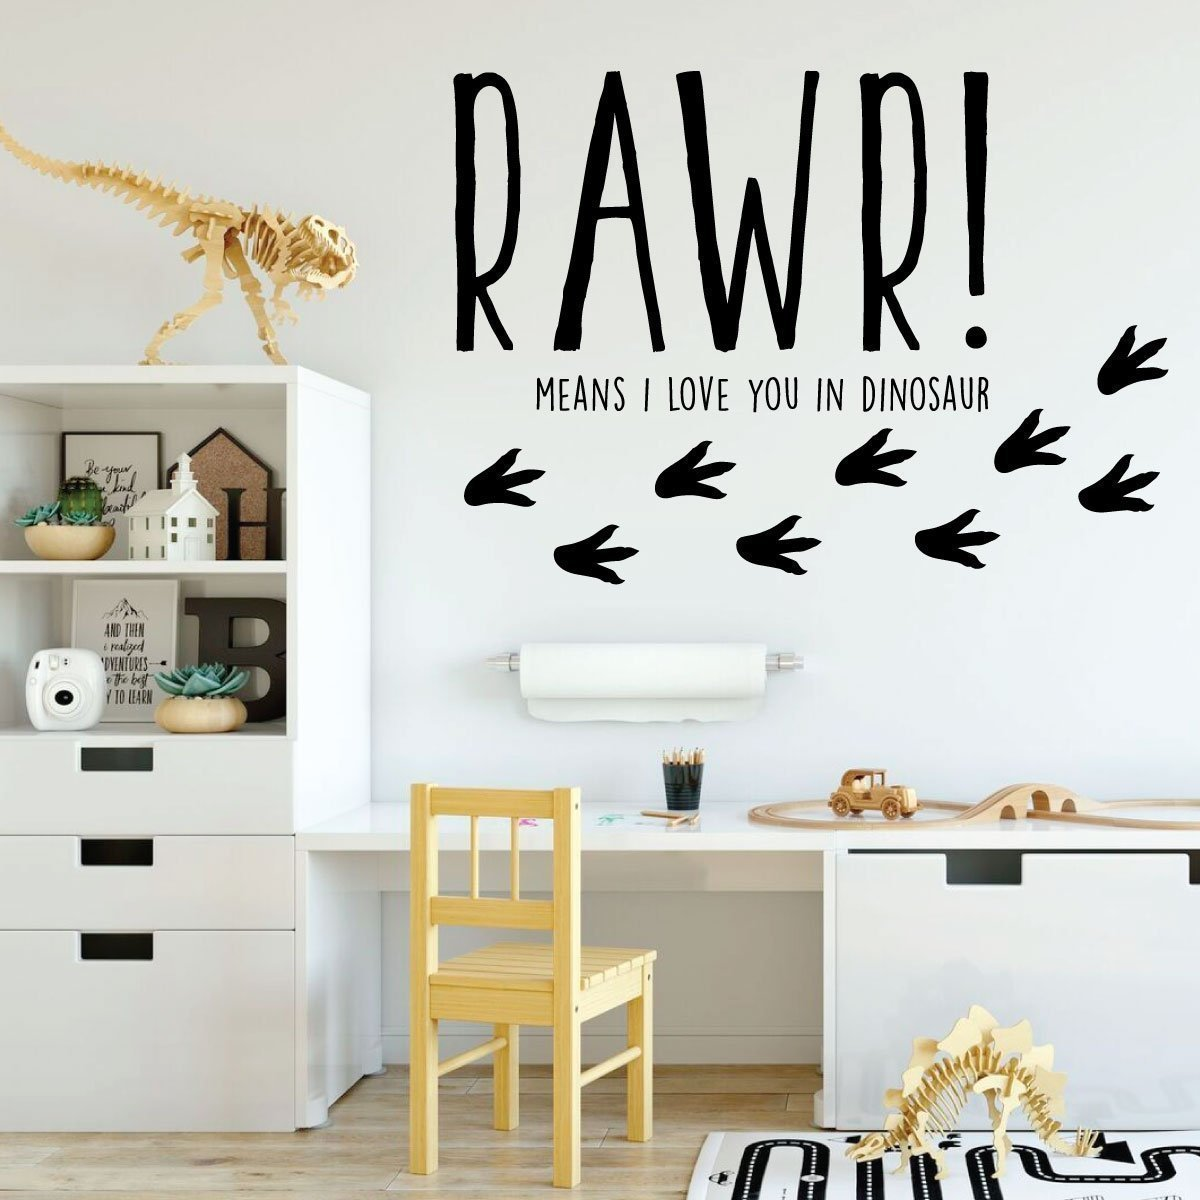 Dinosaur Wall Decal for Kids Room - RAWR! Means I Love You In Dinosaur - Vinyl Sticker for Boy's or Girl's Bedroom - Playroom or Baby Nursery Decoration